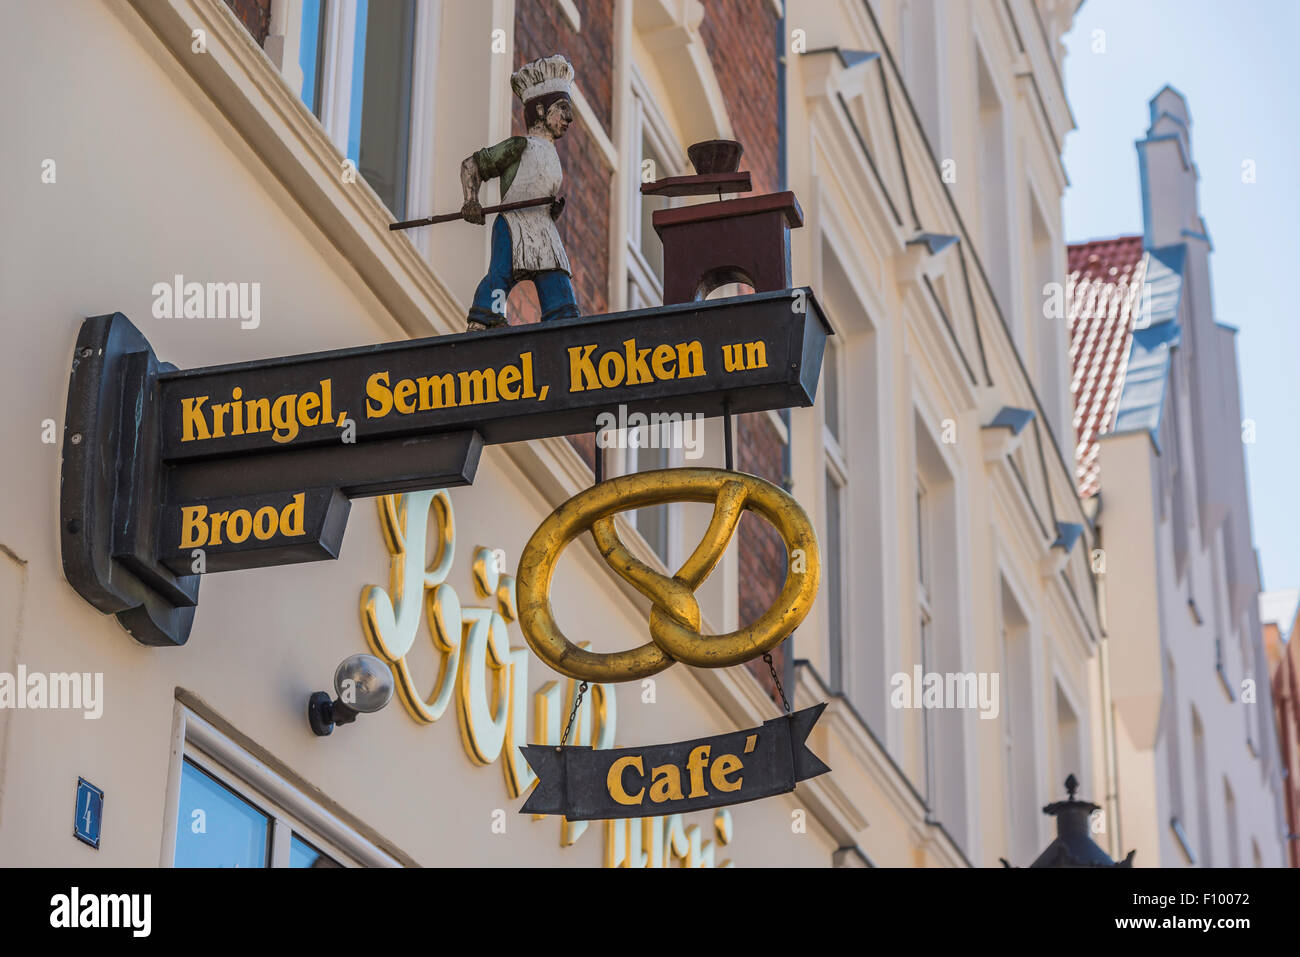 Signboard at a bakery, Wismar, Mecklenburg-Western Pomerania, Germany Stock Photo